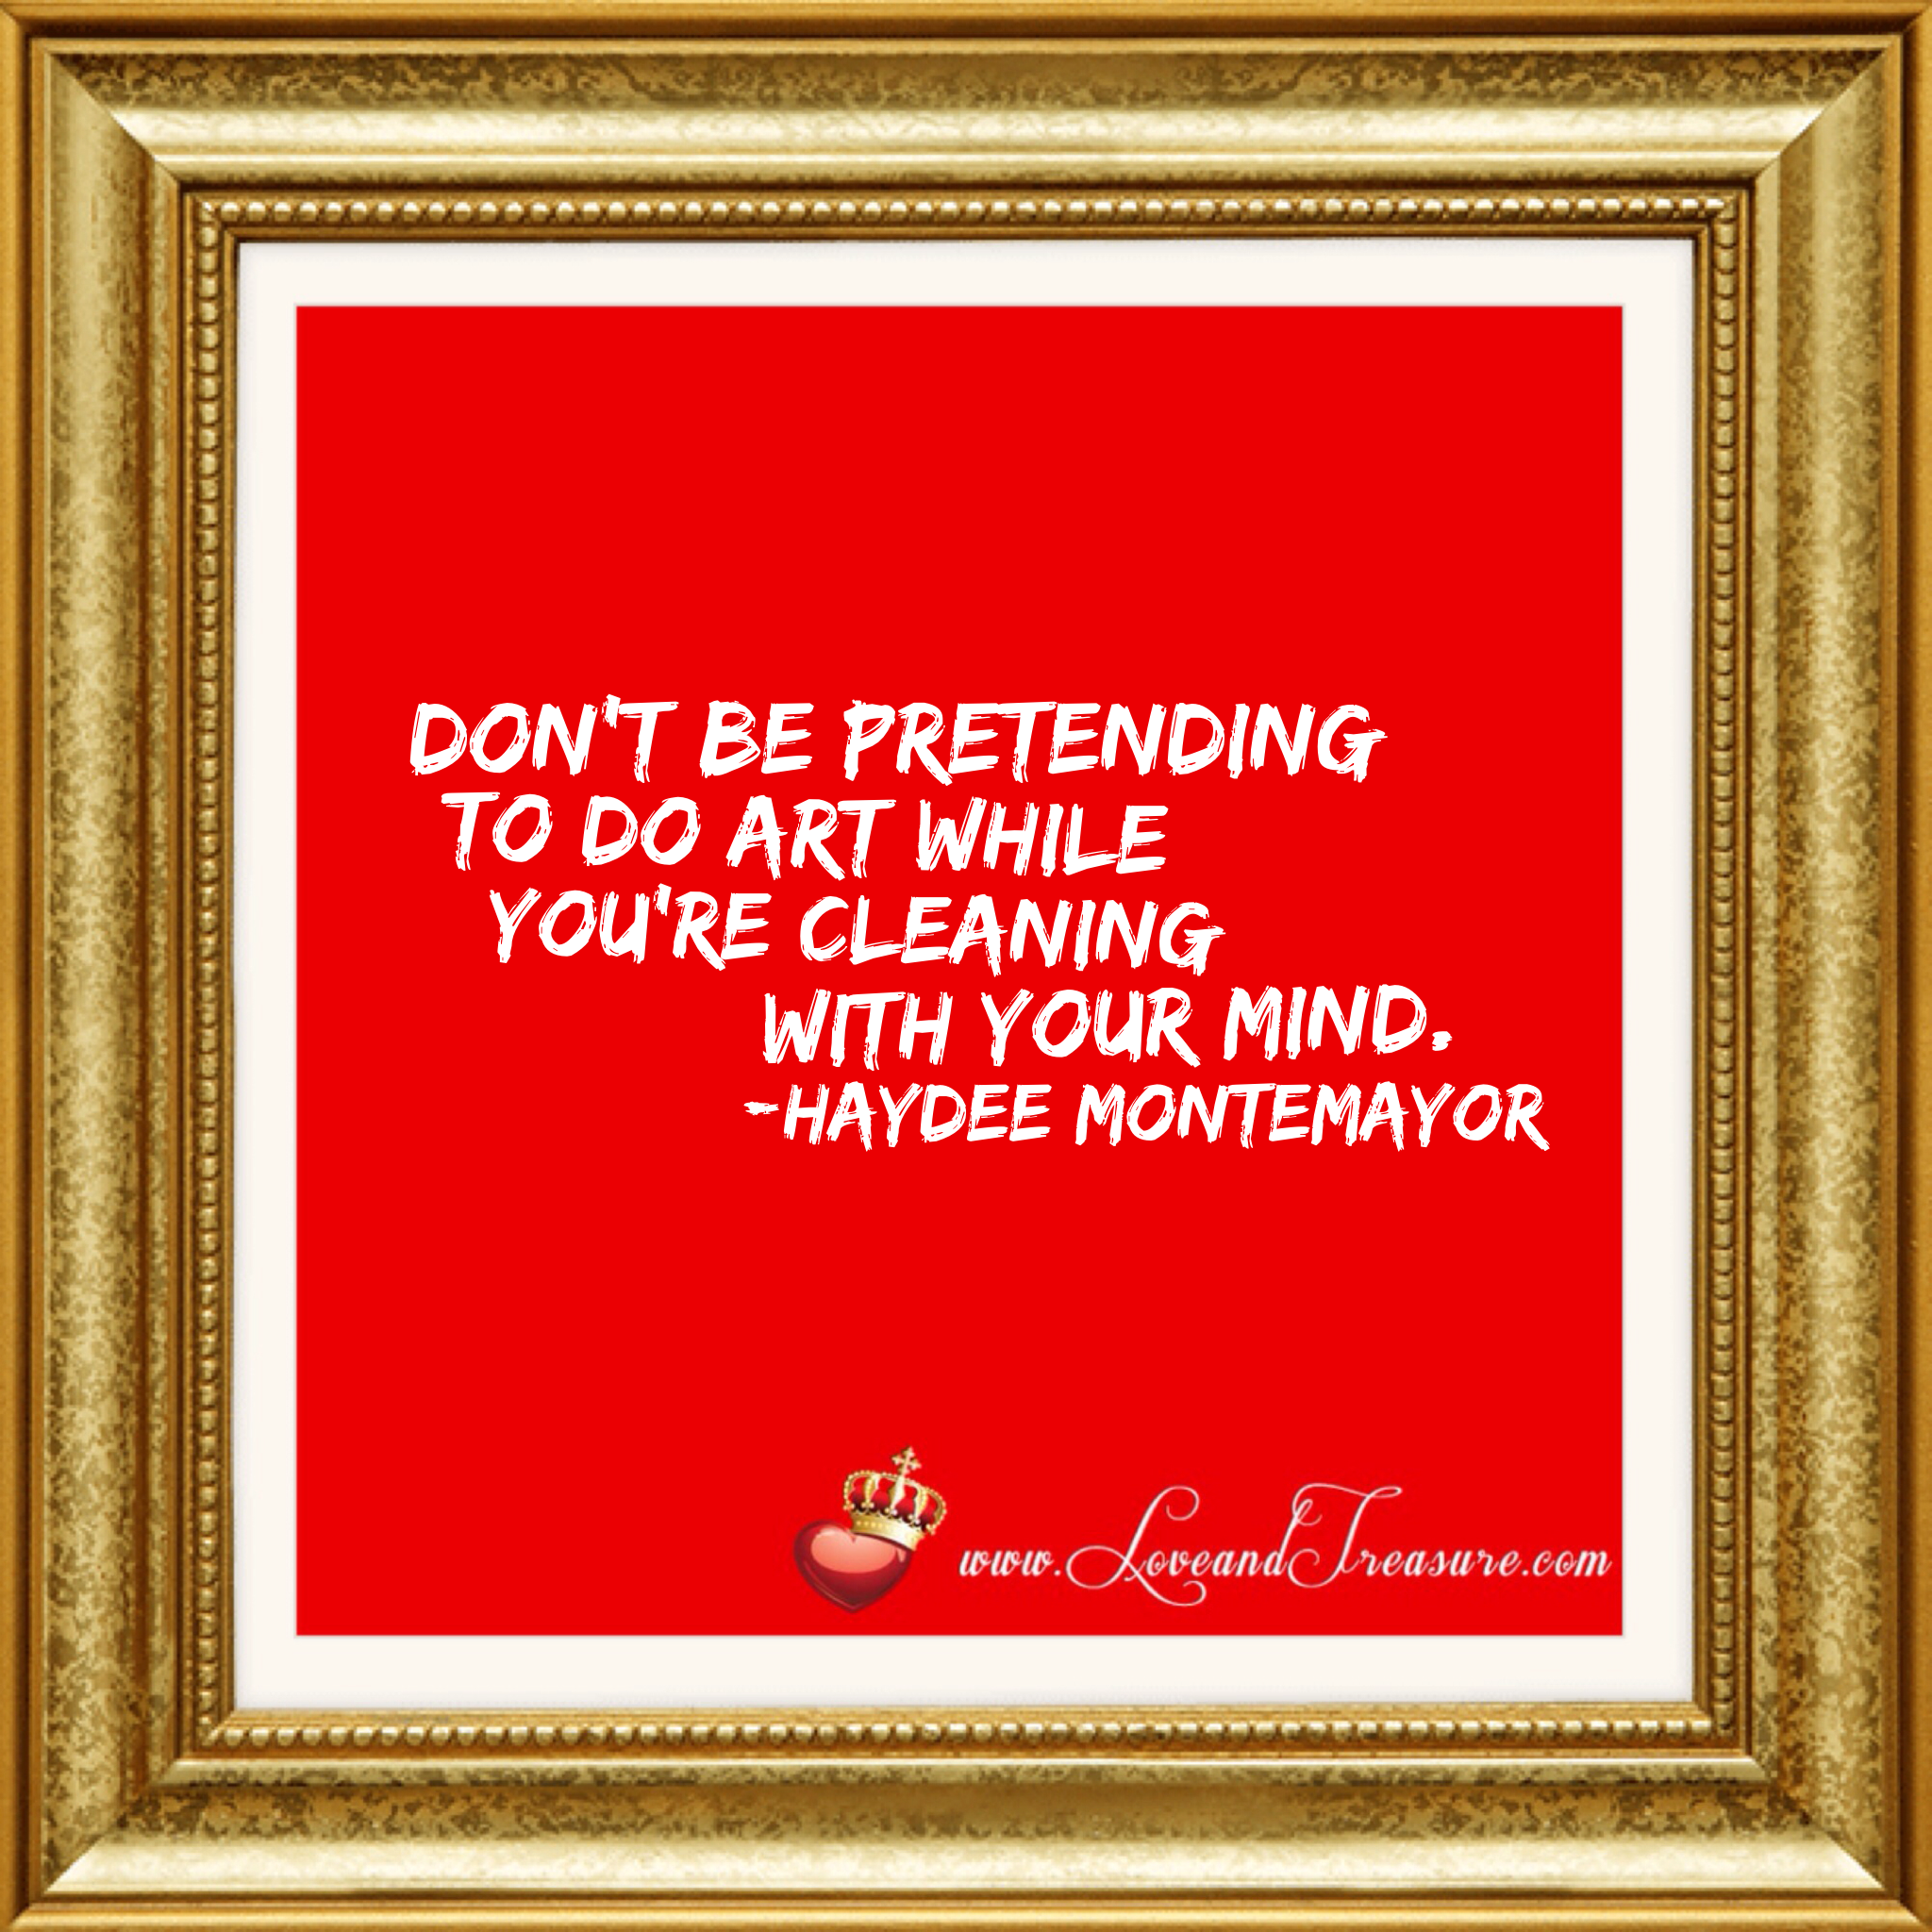 Don't be pretending to do art while you're cleaning with your mind by Haydee Montemayor from Love and Treasure blog www.loveandtreasure.com